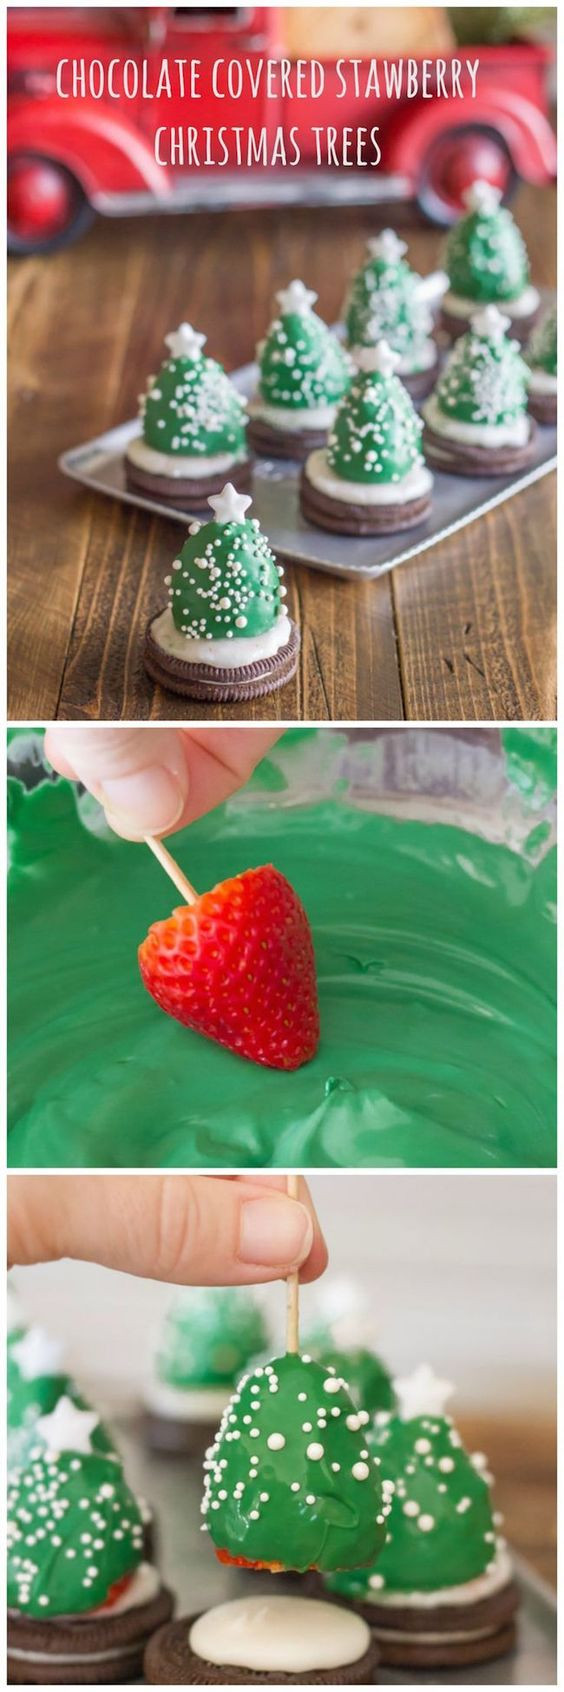 Pinterest Christmas Desserts  Chocolate covered strawberry Christmas trees and 10 other